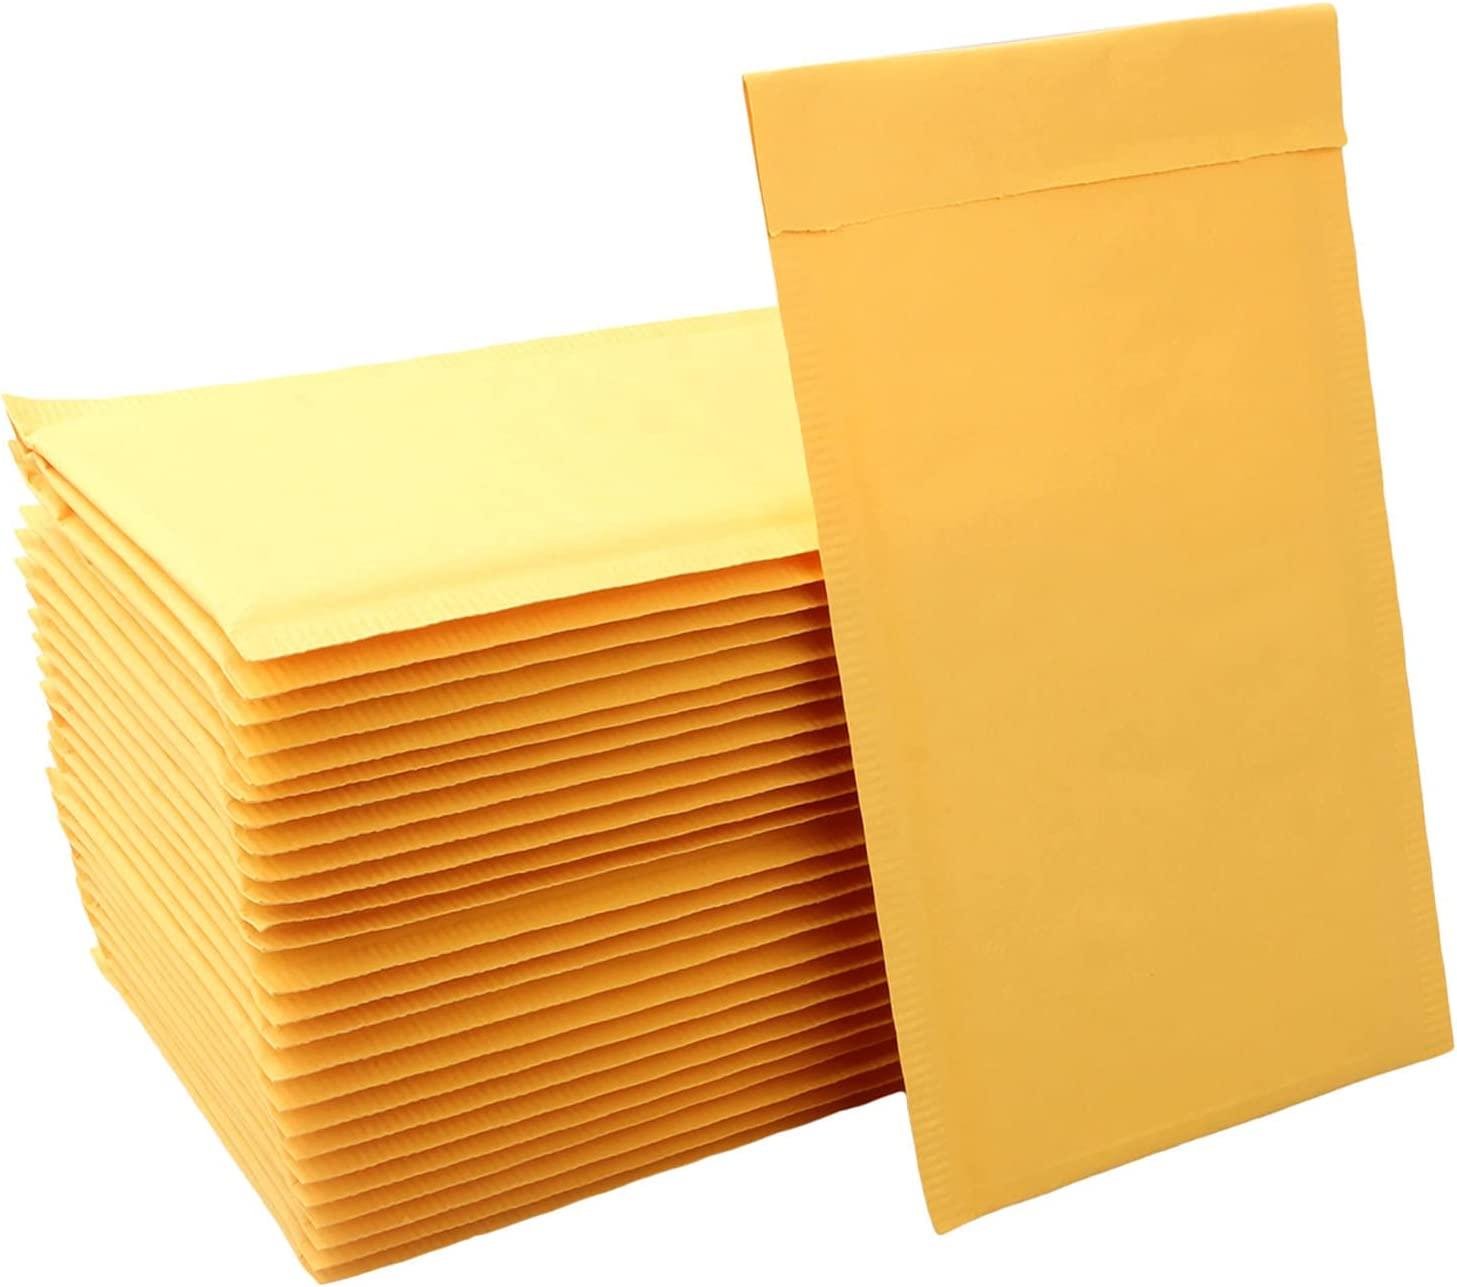 Acrux7 Kraft Max 66% OFF Bubble Mailers 5 x Mailing Houston Mall Envelopes 50 10